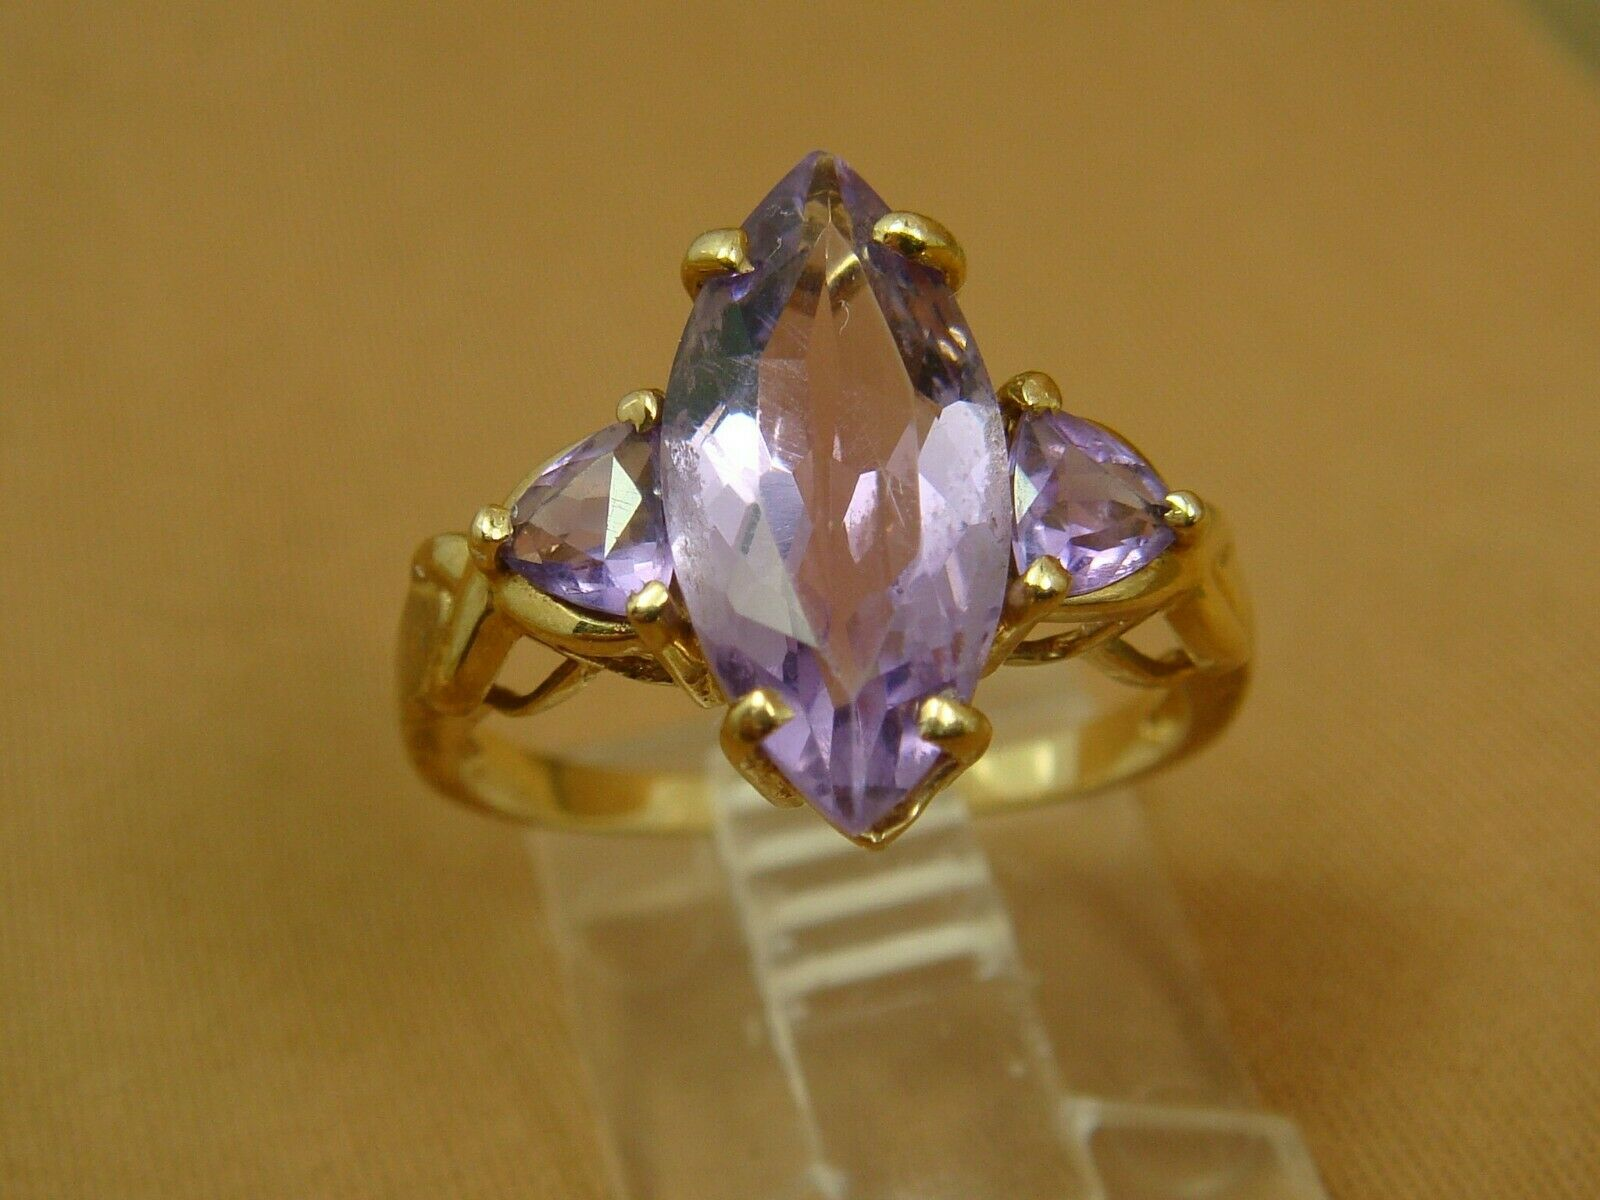 10K YG Marquise Shaped Amethyst with Triilliant Side Stones Ring - Size 7.25